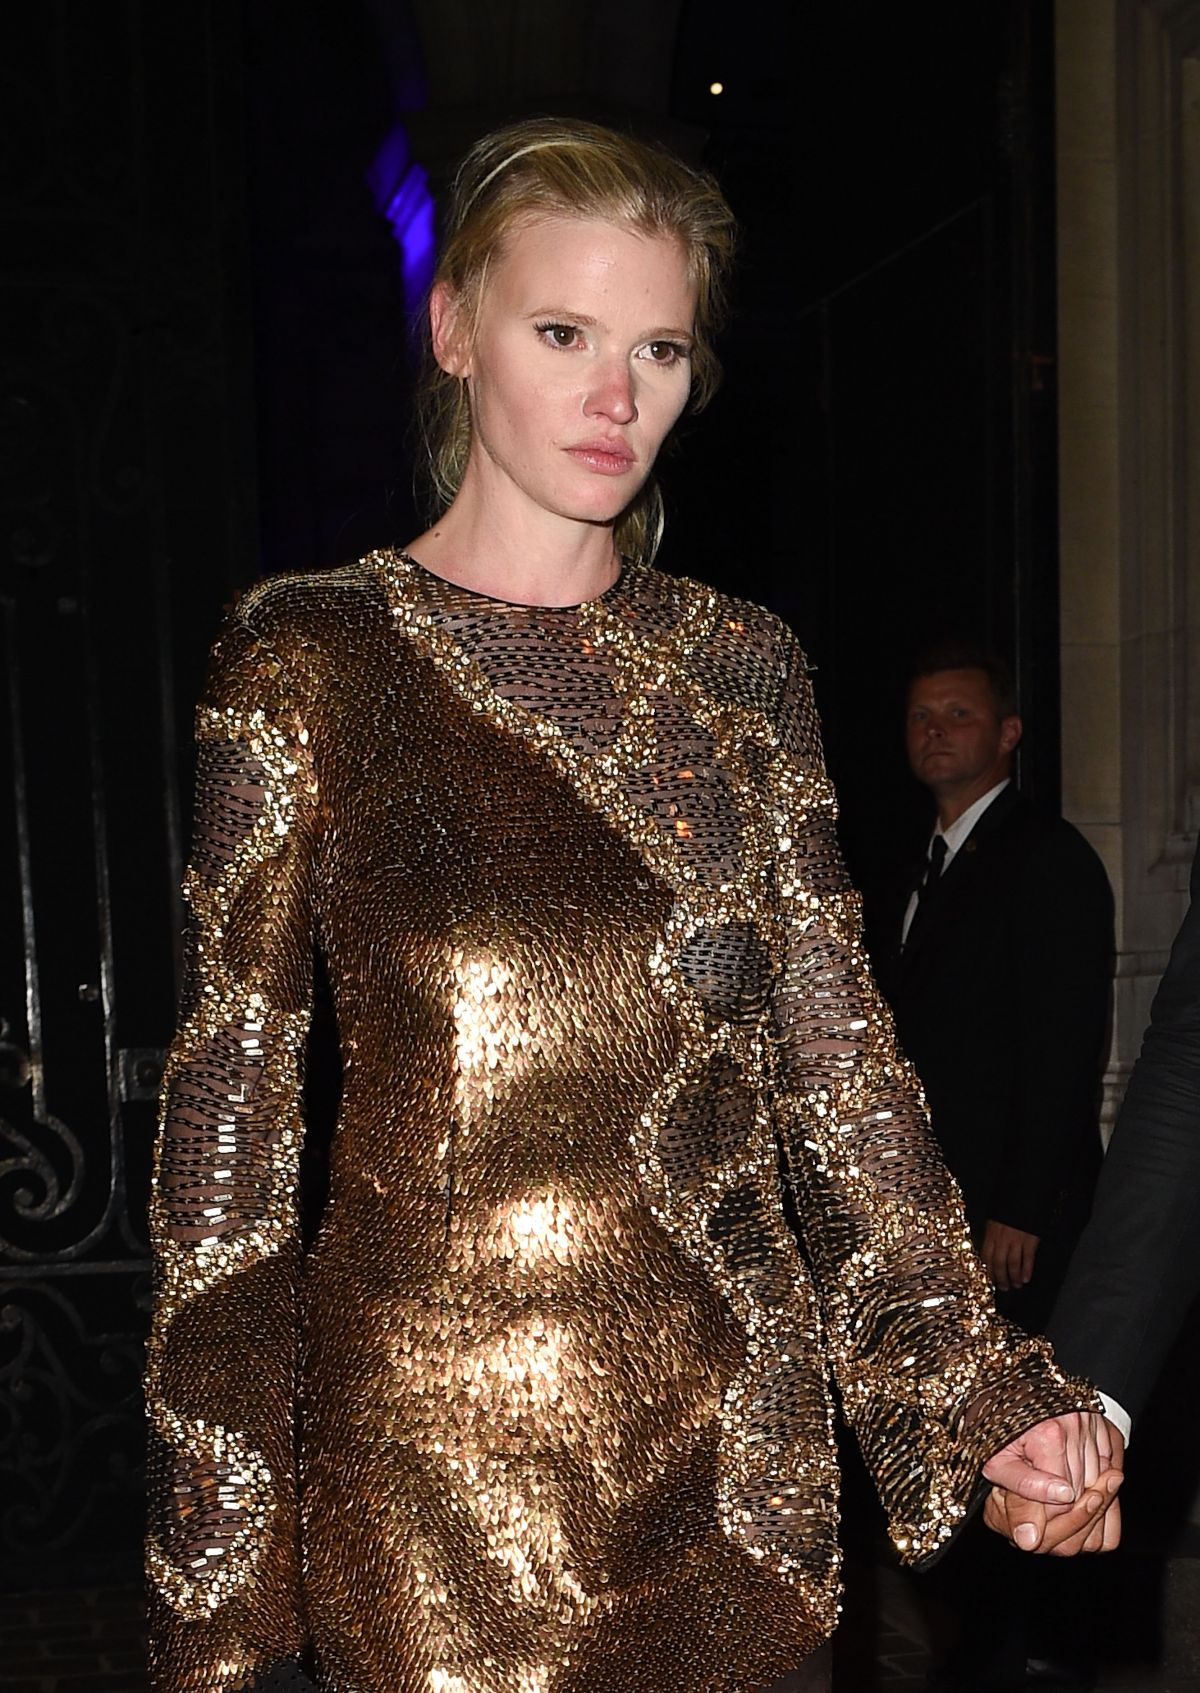 LARA STONE at Vogue Party at Paris Fashion Week 07/04/2017